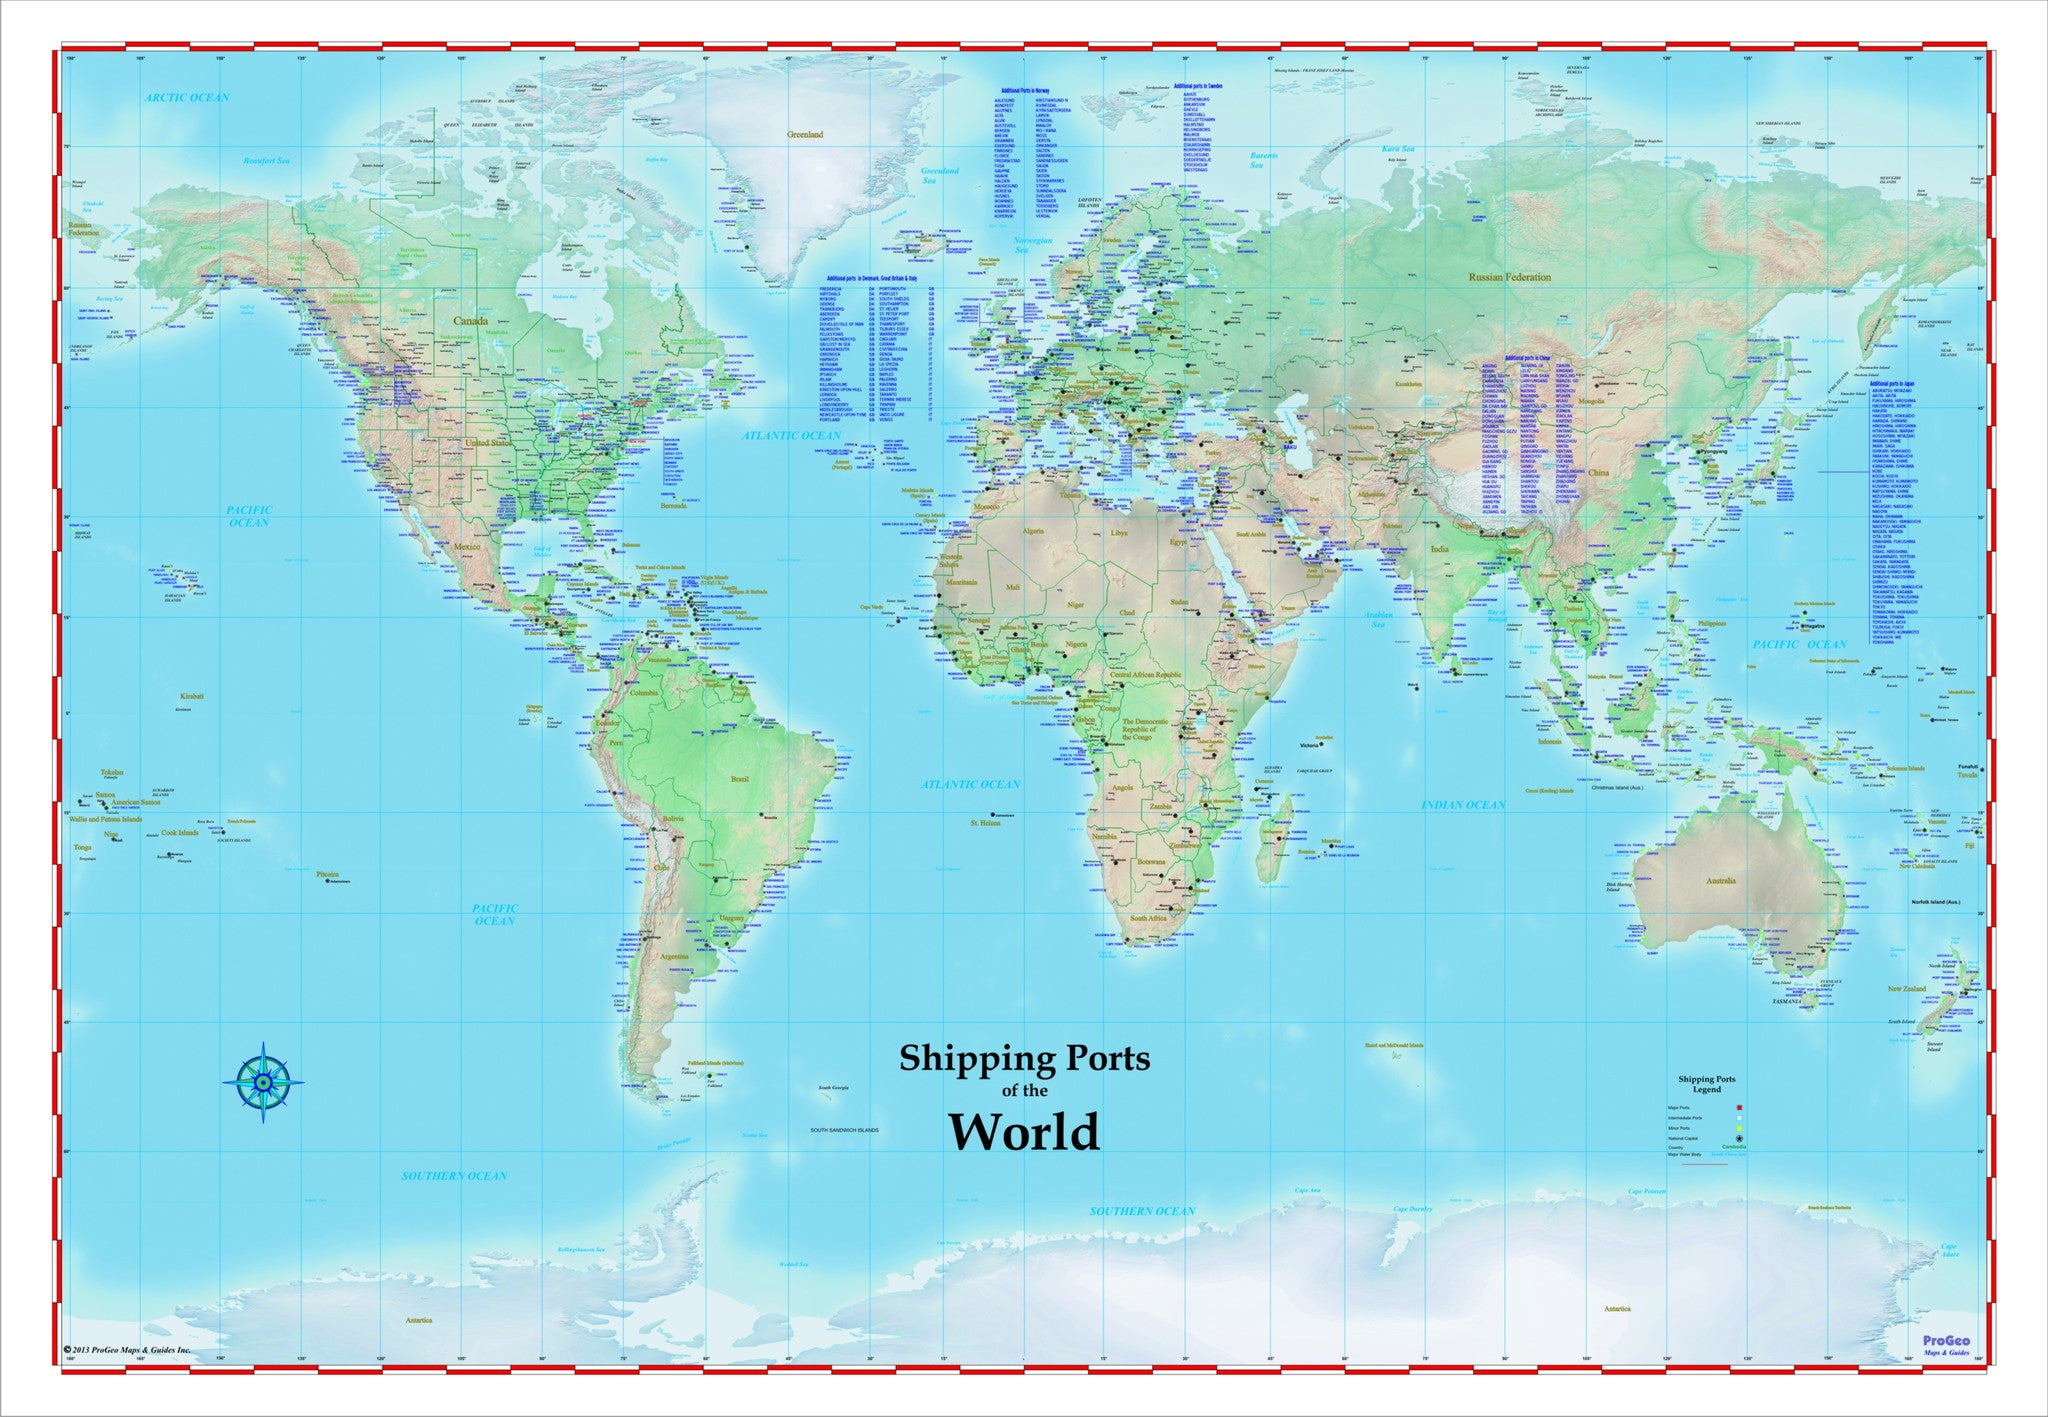 Picture of: World Shipping Ports Map Laminated Rolled Progeo Maps Guides